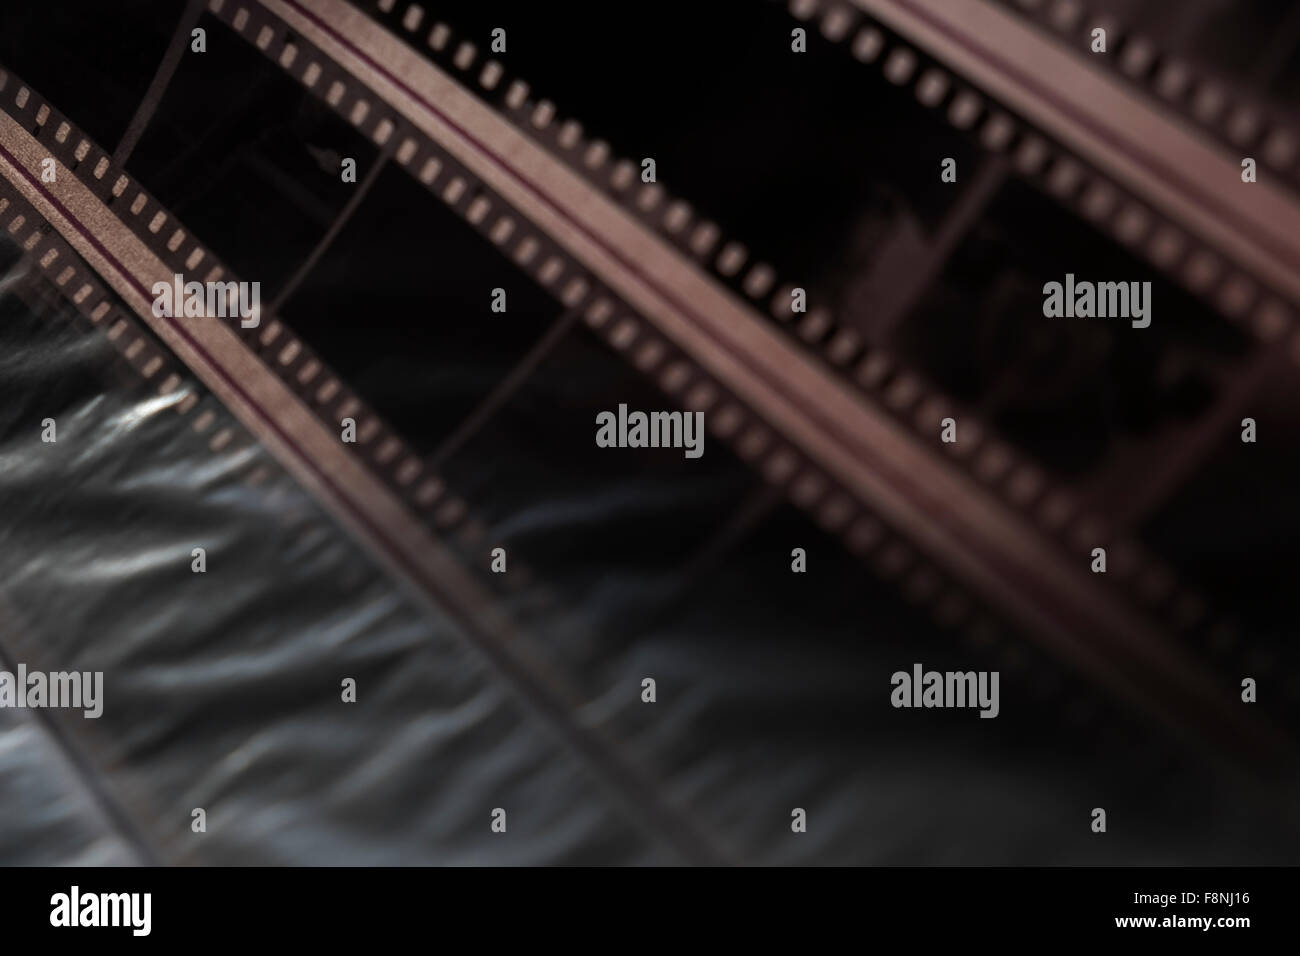 Archive of photographic negatives , analogue photography - Stock Image